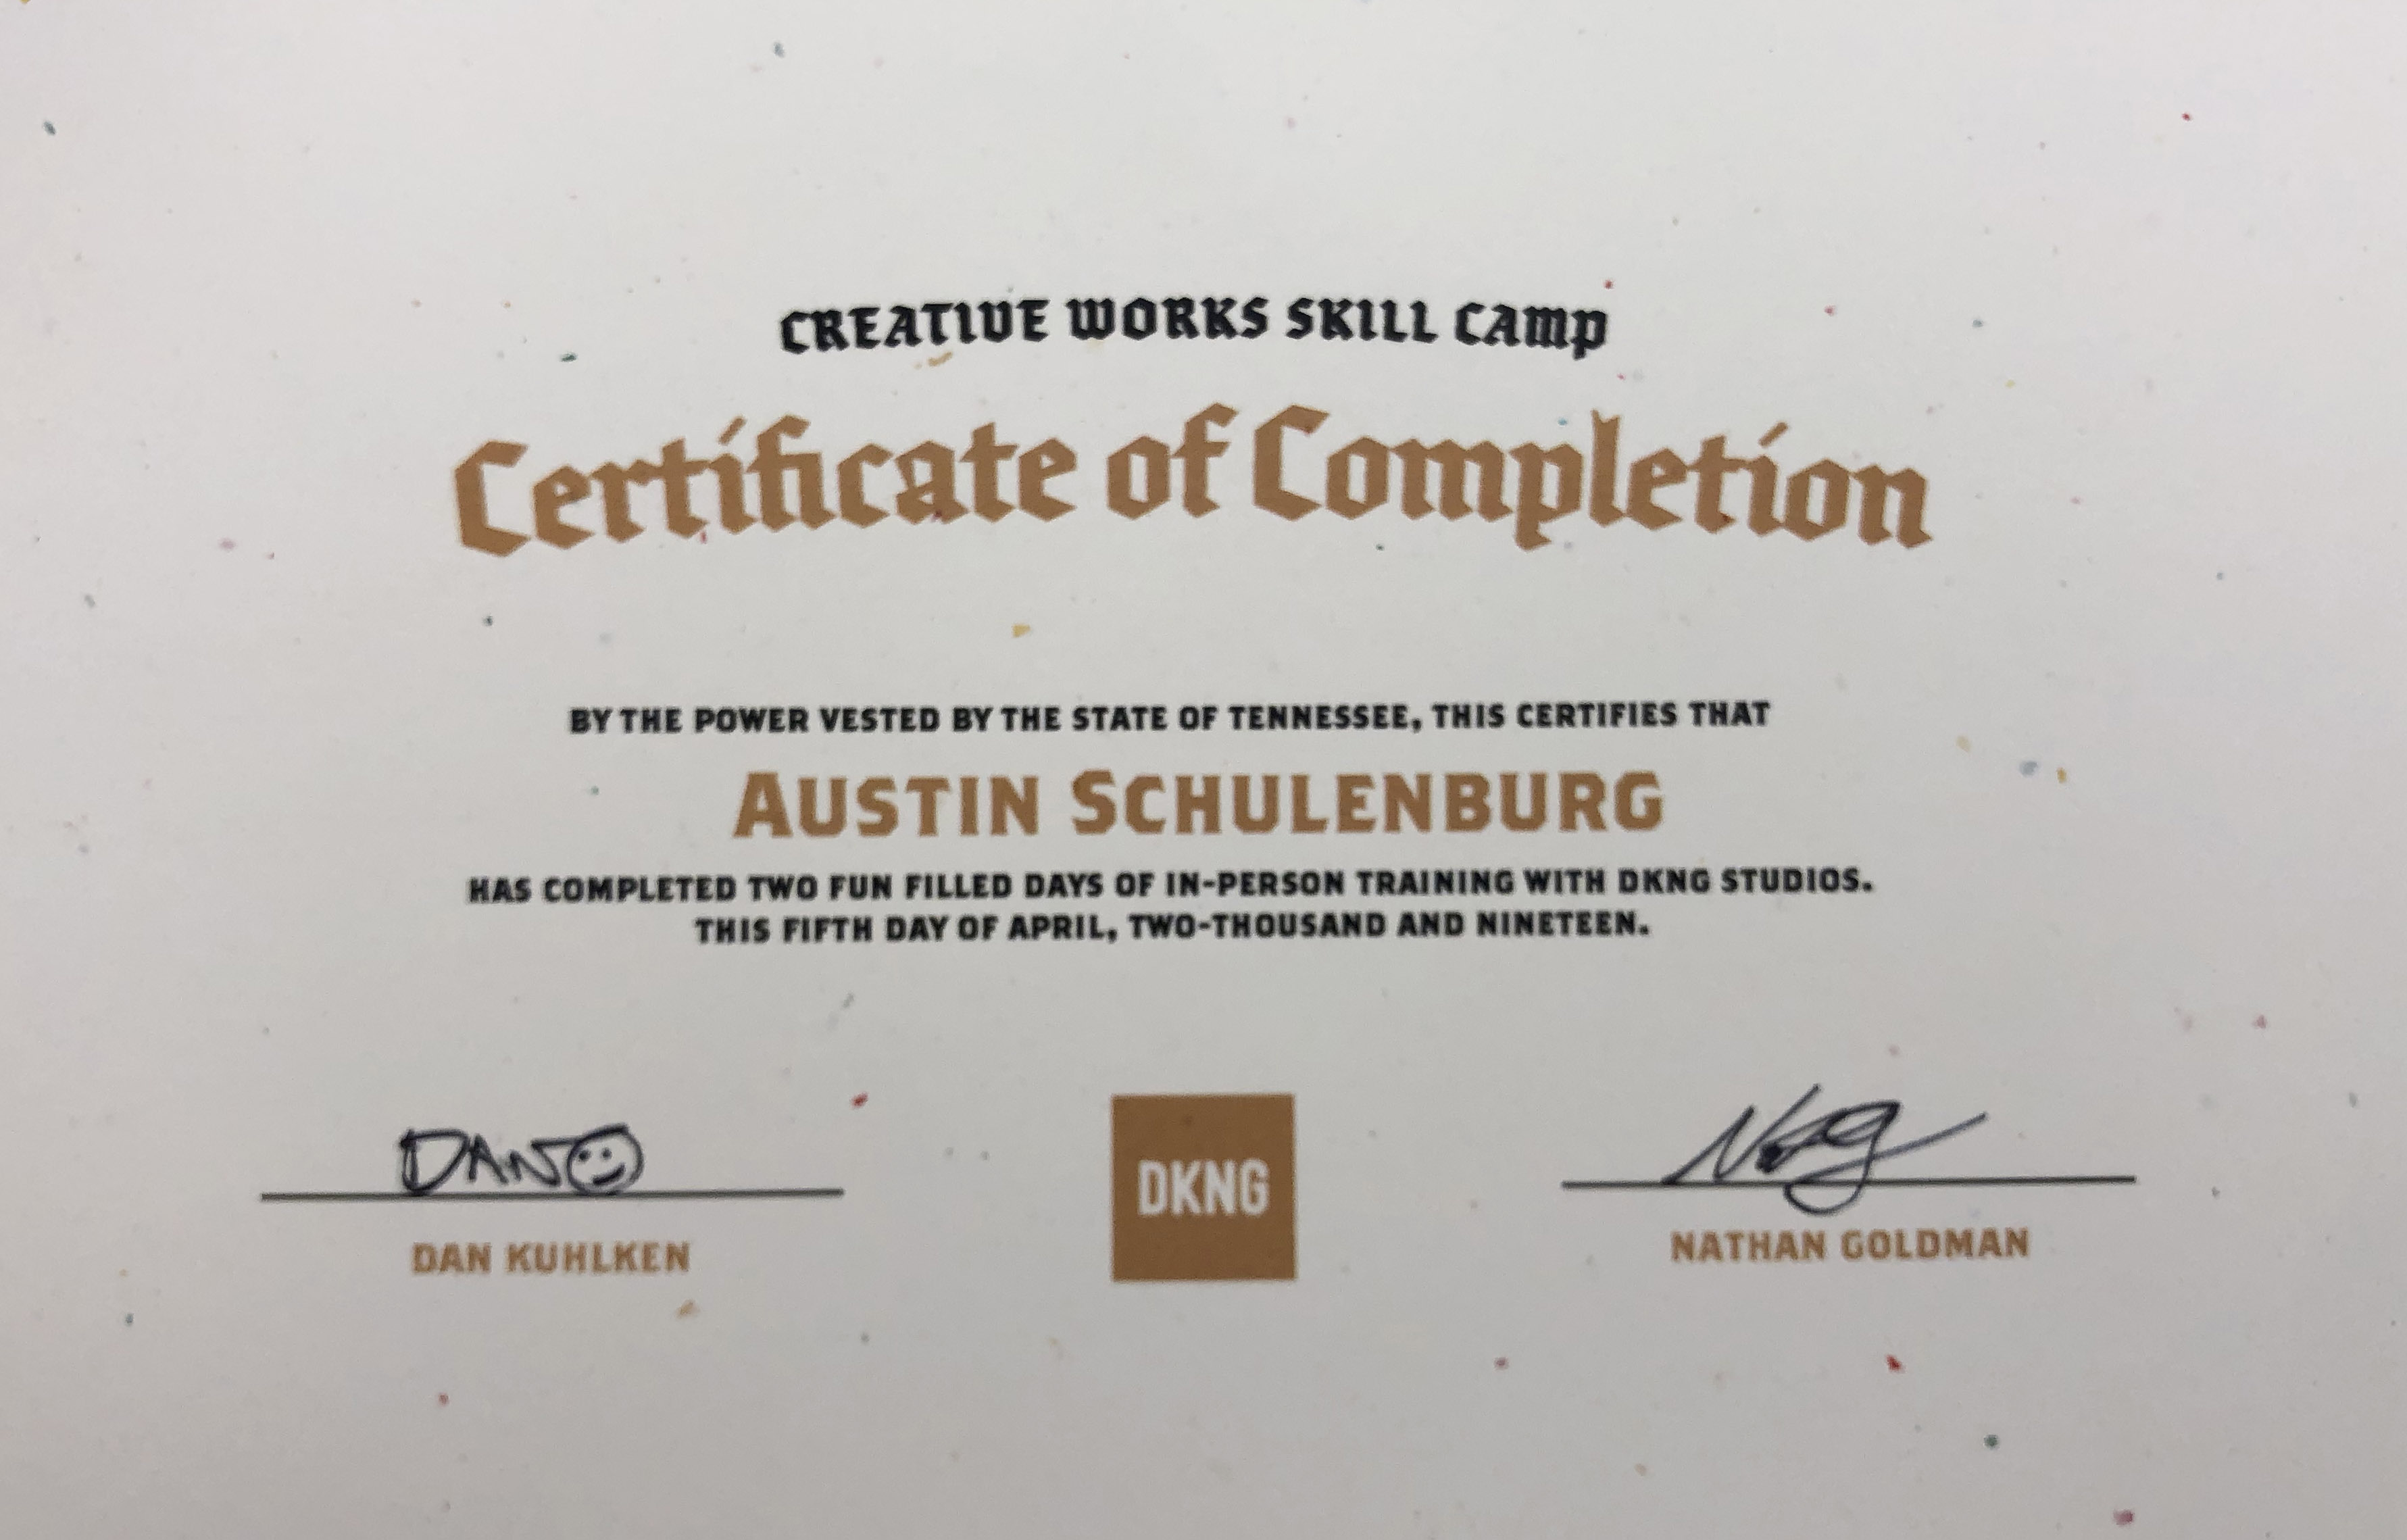 Austin's Creative Works Skills Camp Certificate of Completion, signed by Dan and Nathan